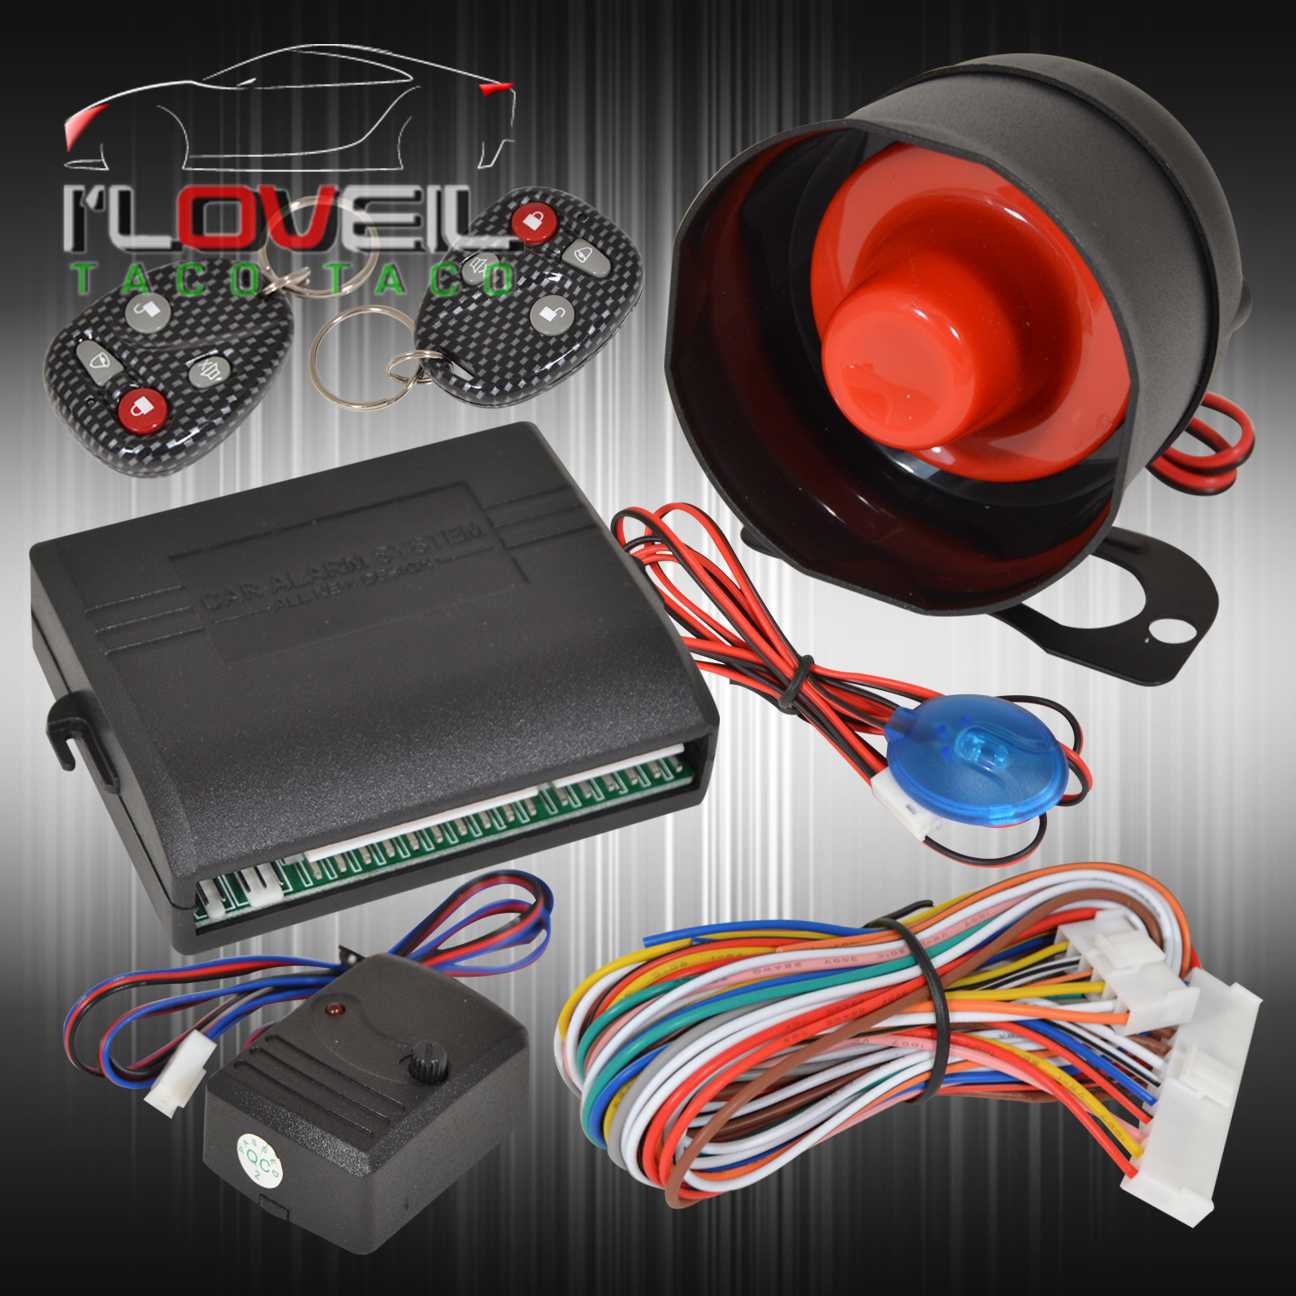 New Chevy Gmc Ford Security Remote Car Alarm System   2